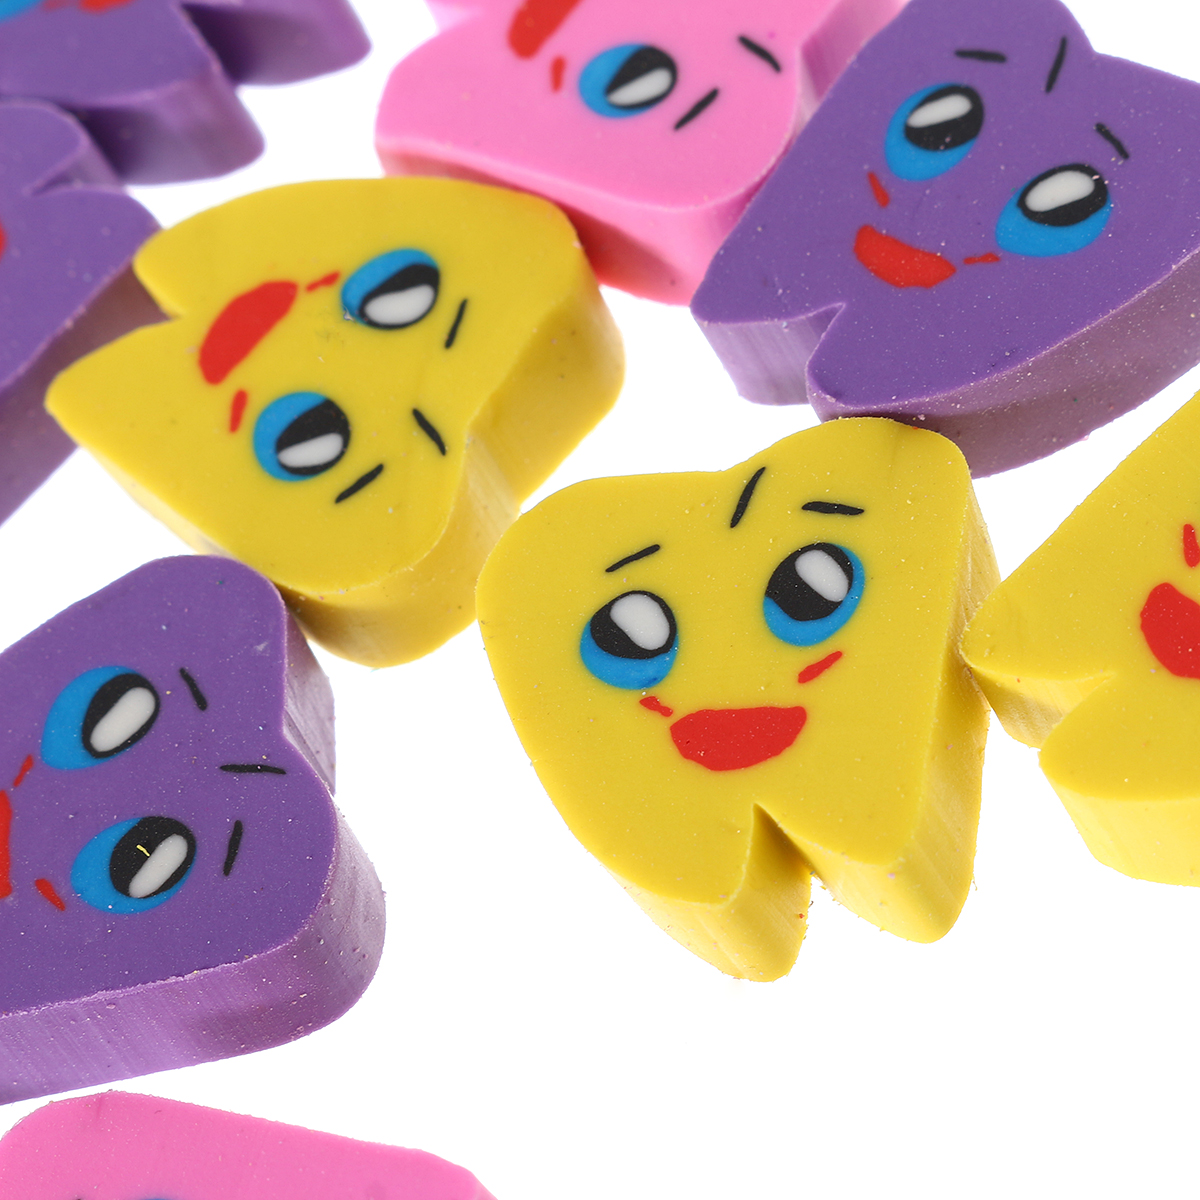 50pcs/bag Molar Tooth Shaped Rubber Erasers Lovely Oral Dentist Dental Clinic School Gift Cute Supplies 2.1*2.1cm Random Color